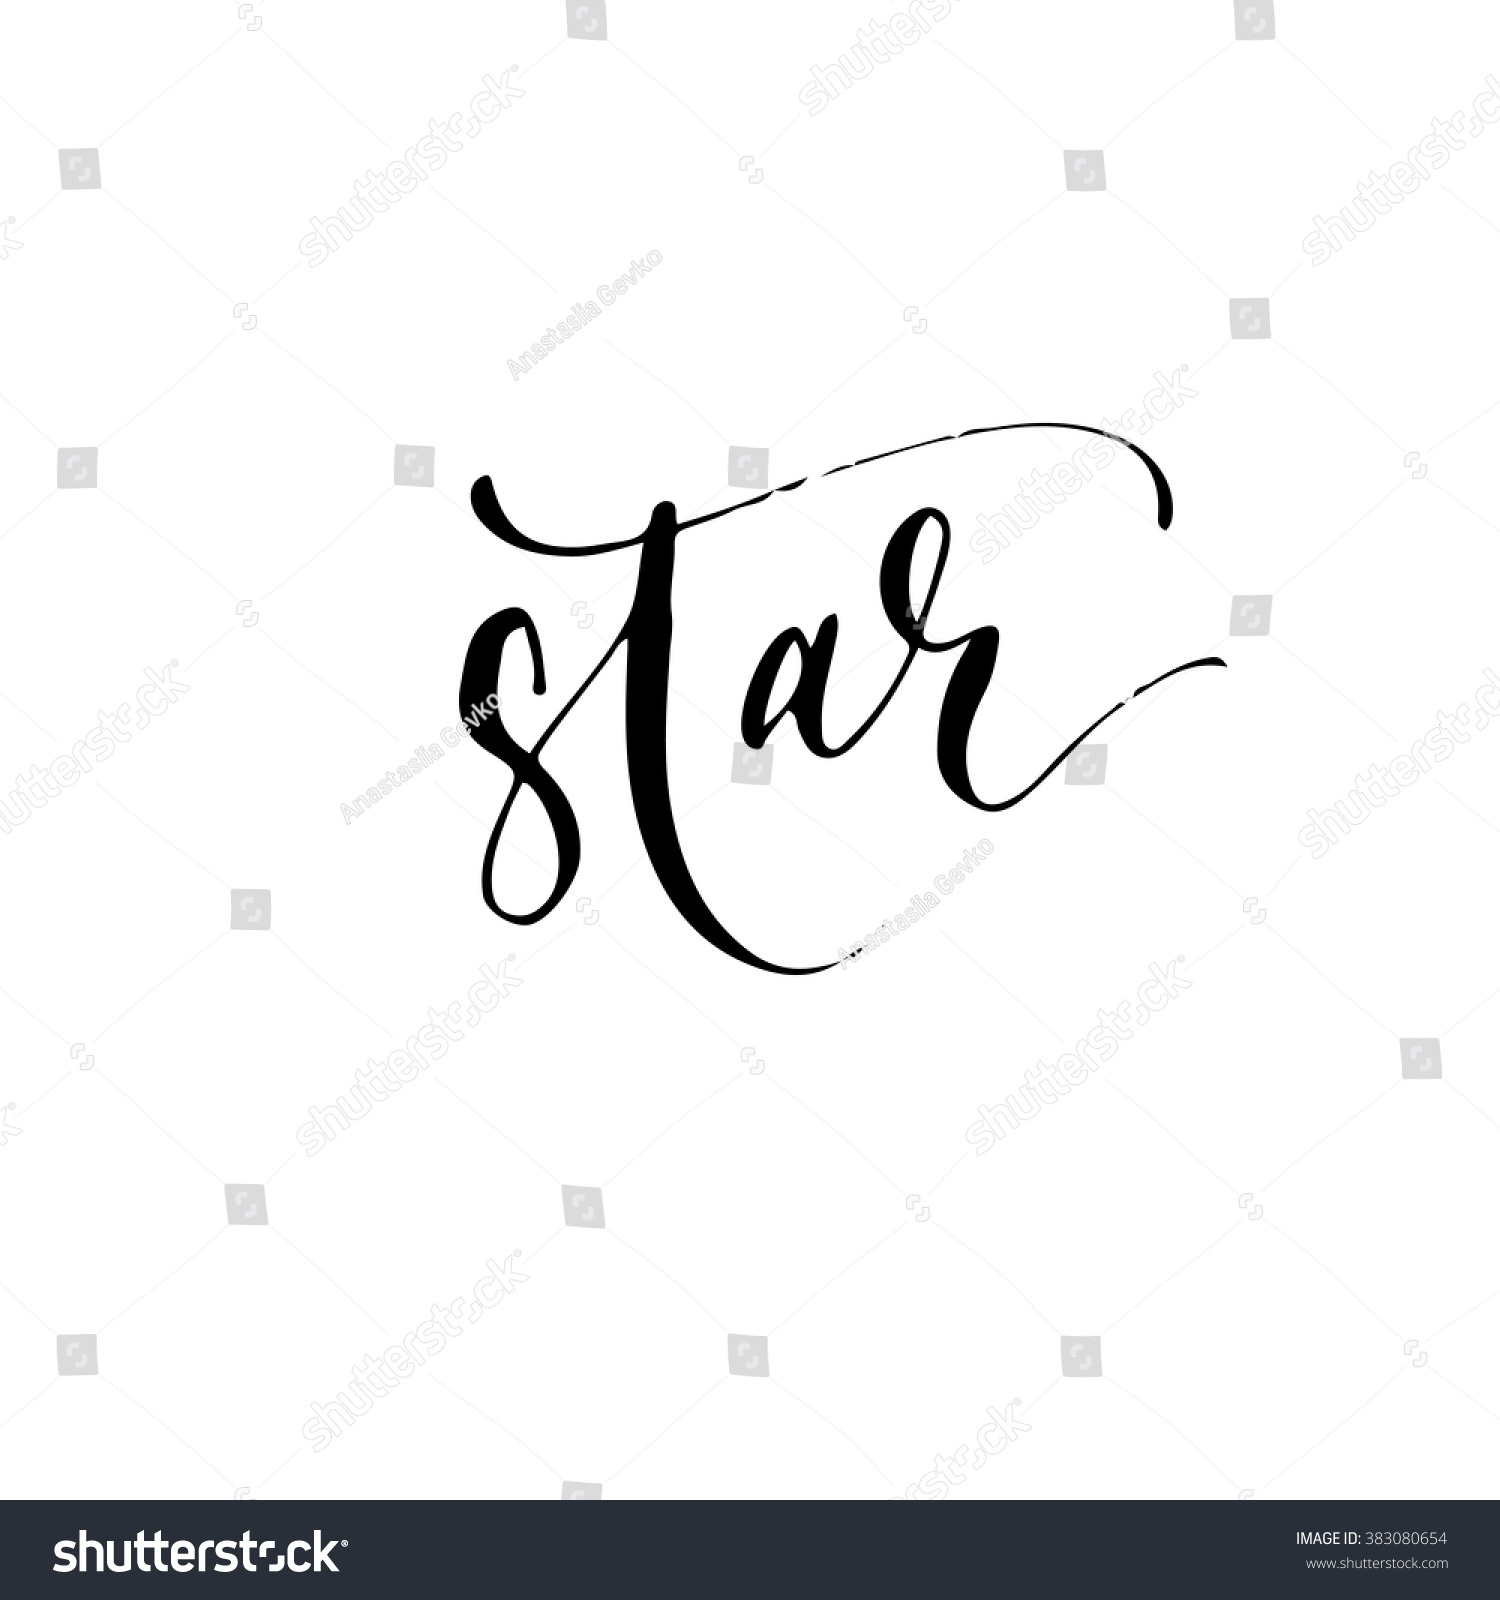 short word star hand drawn lettering stock vector royalty free